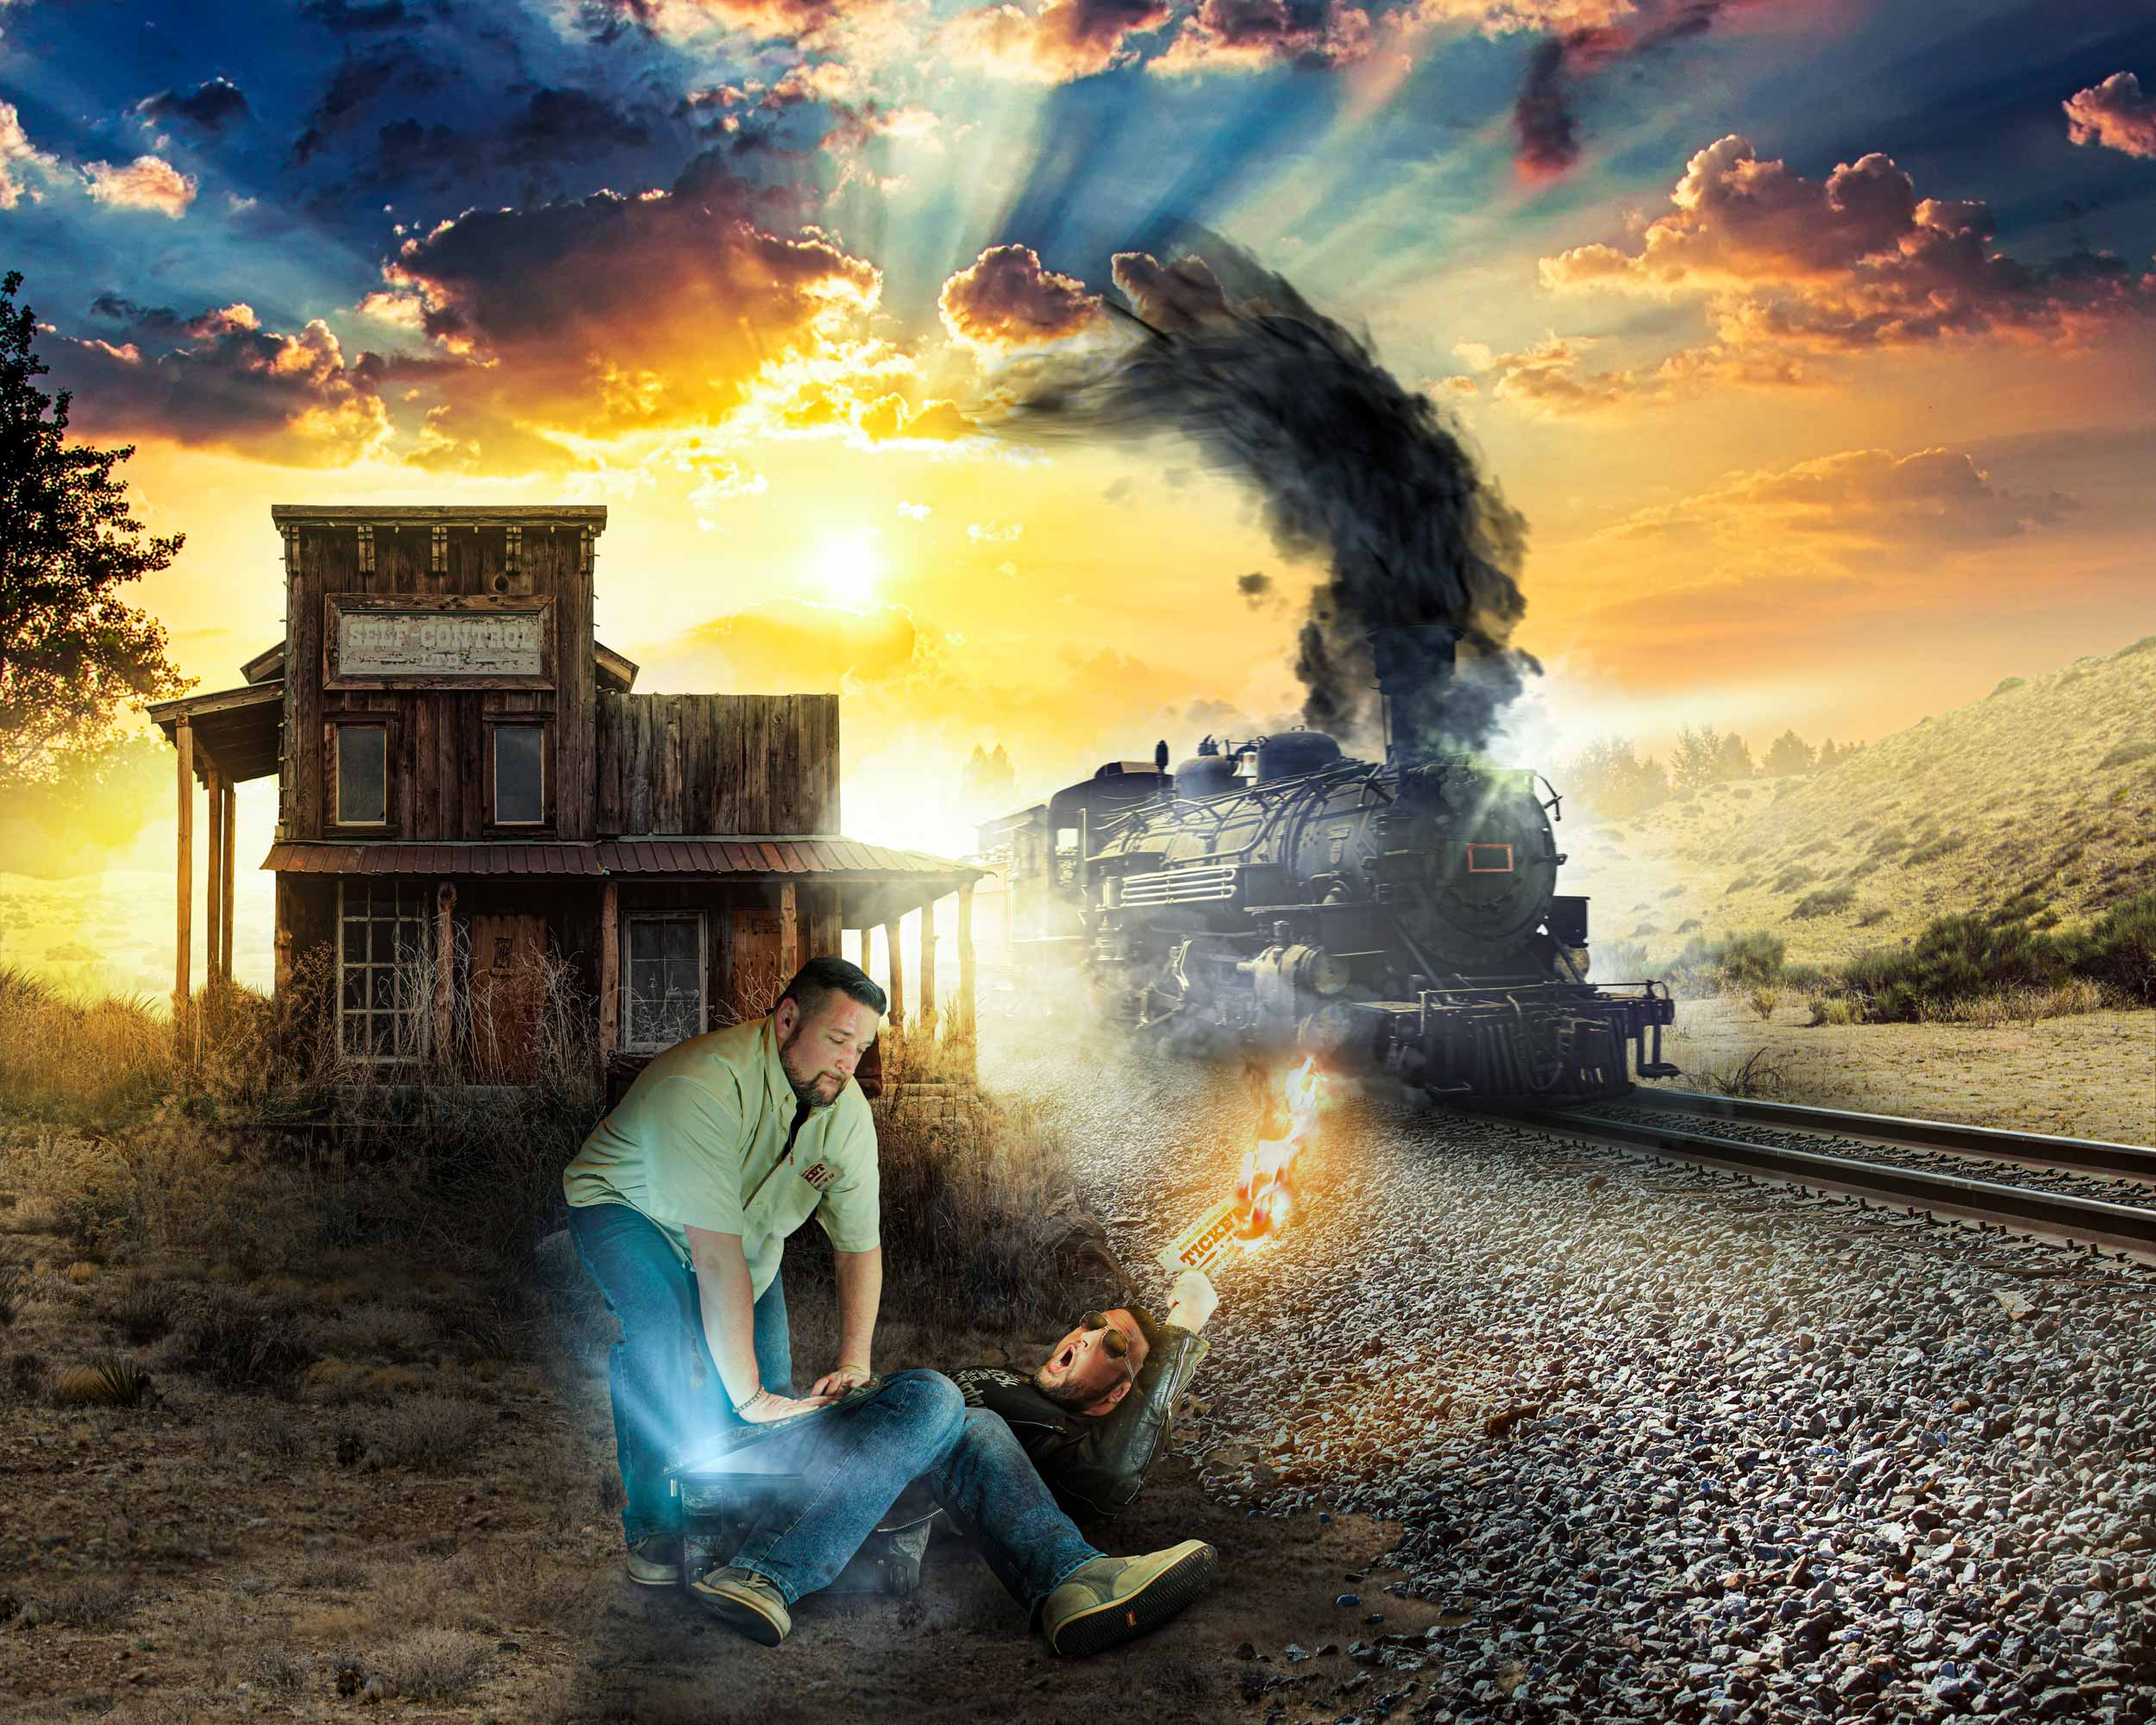 A man tries to restrain his evil clone into a suitcase as an old steam engine train races past the train station.